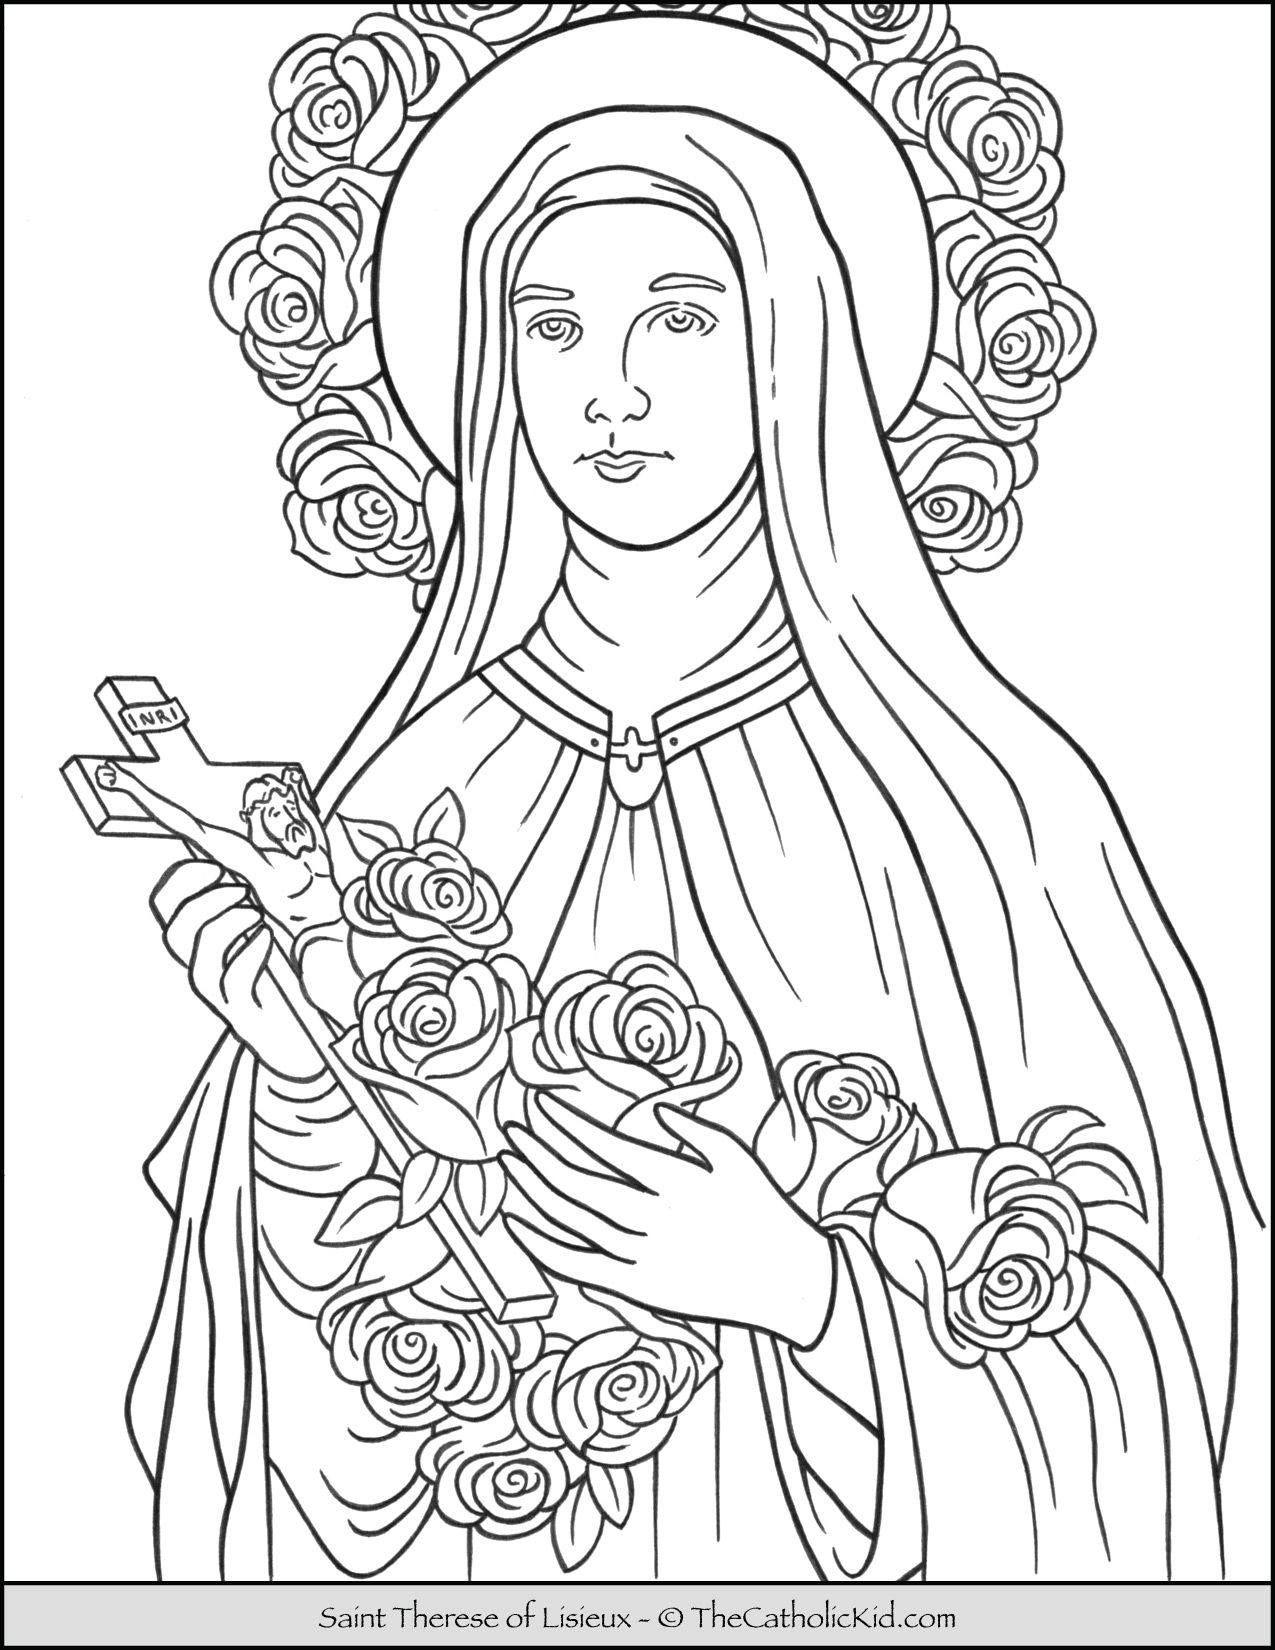 Saint Therese Of Lisieux Coloring Page Thecatholickkid Com In